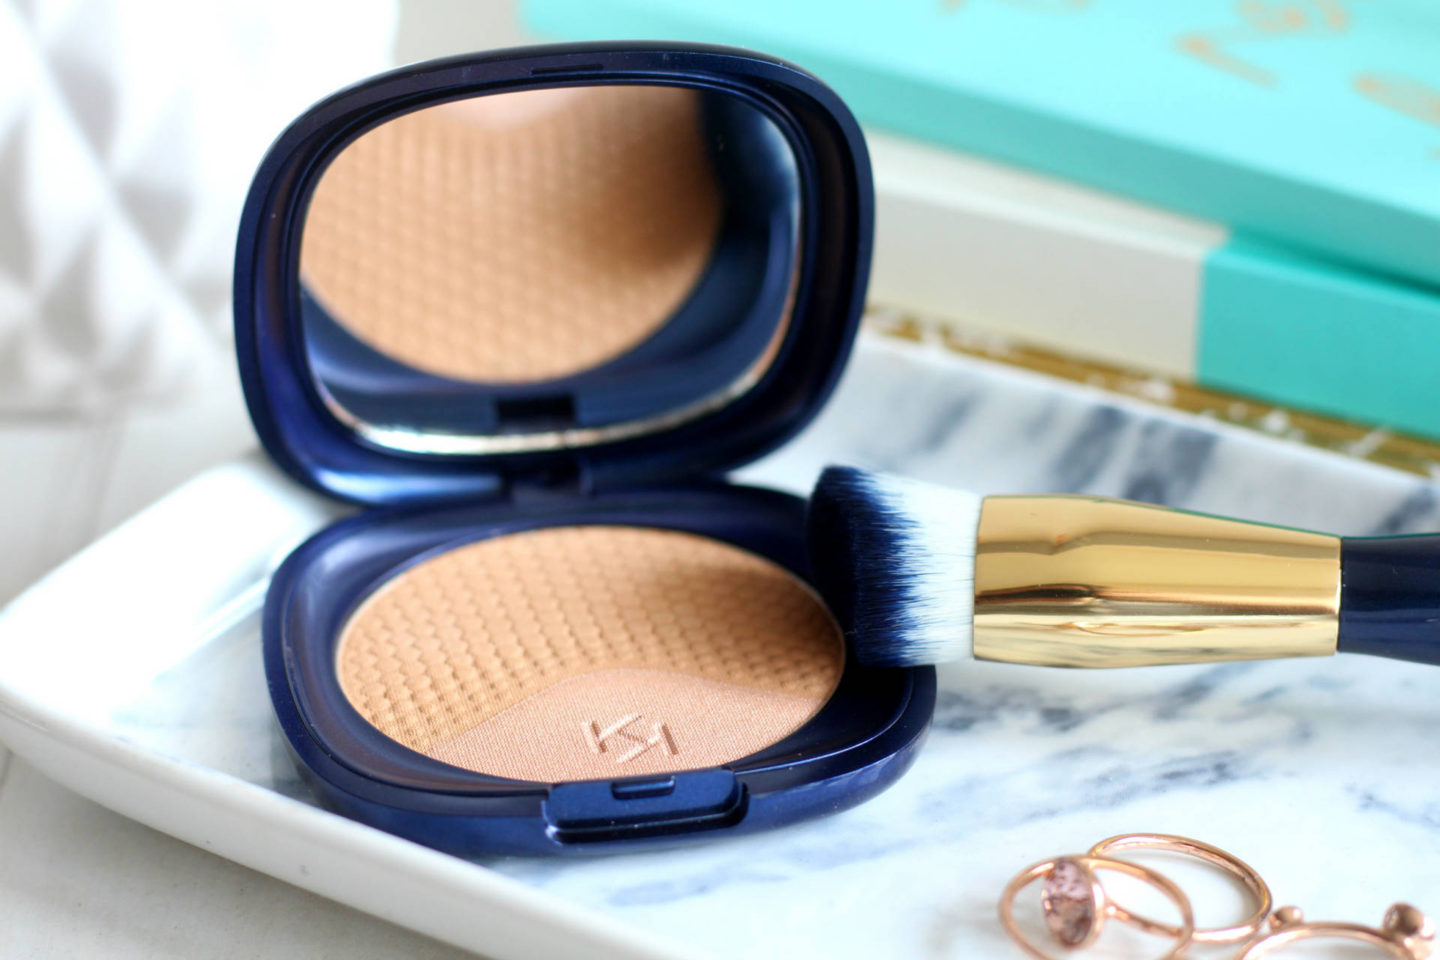 KIKO MILANO The Fall 2.0 Collection Duo Bronzer